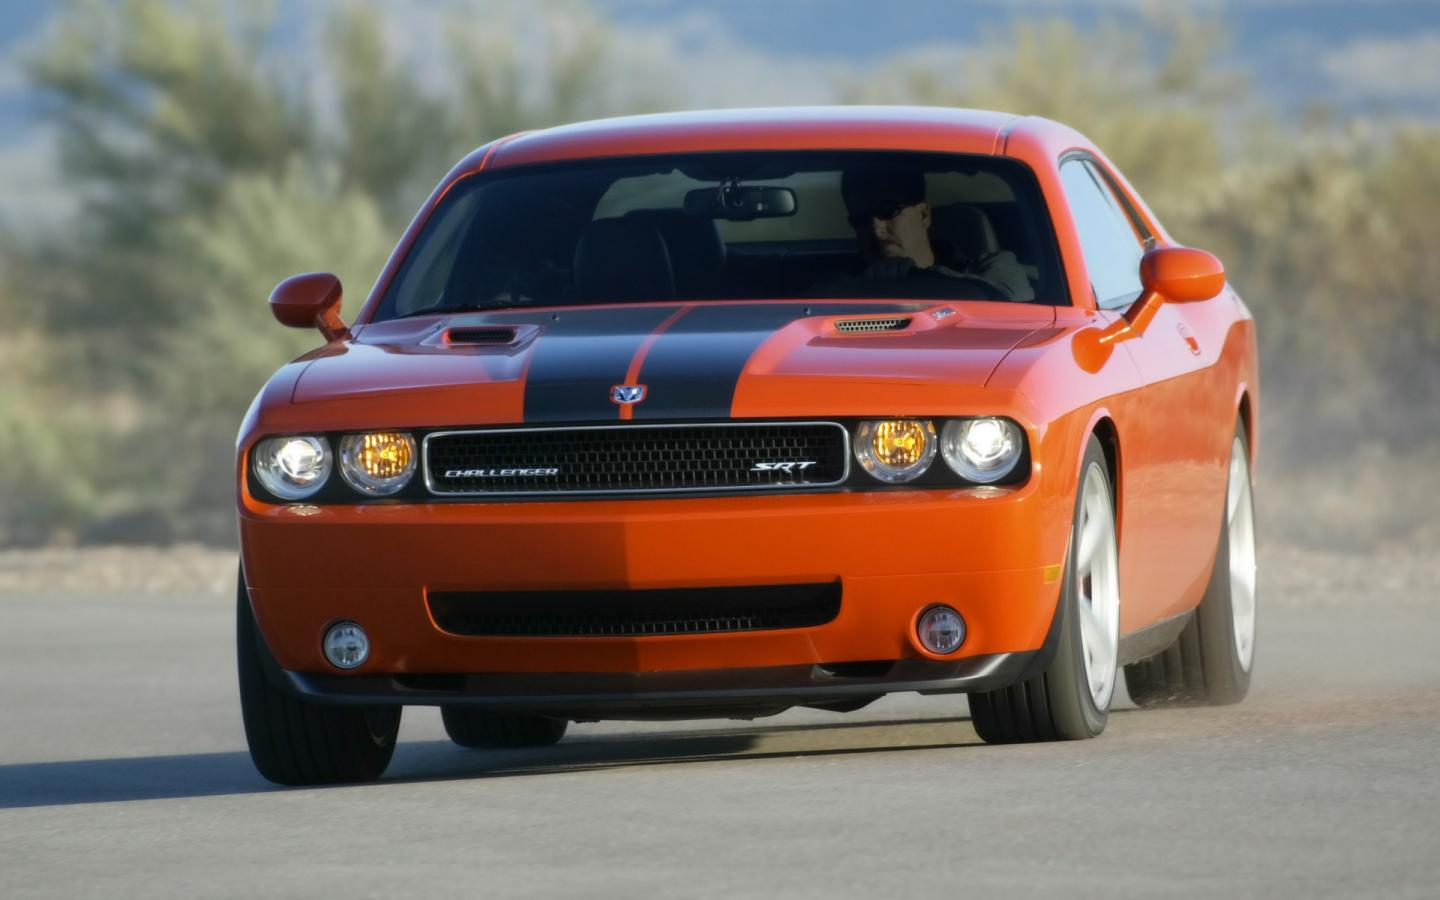 2008 Dodge Challenger Srt8 Front Angle Speed 1440x900